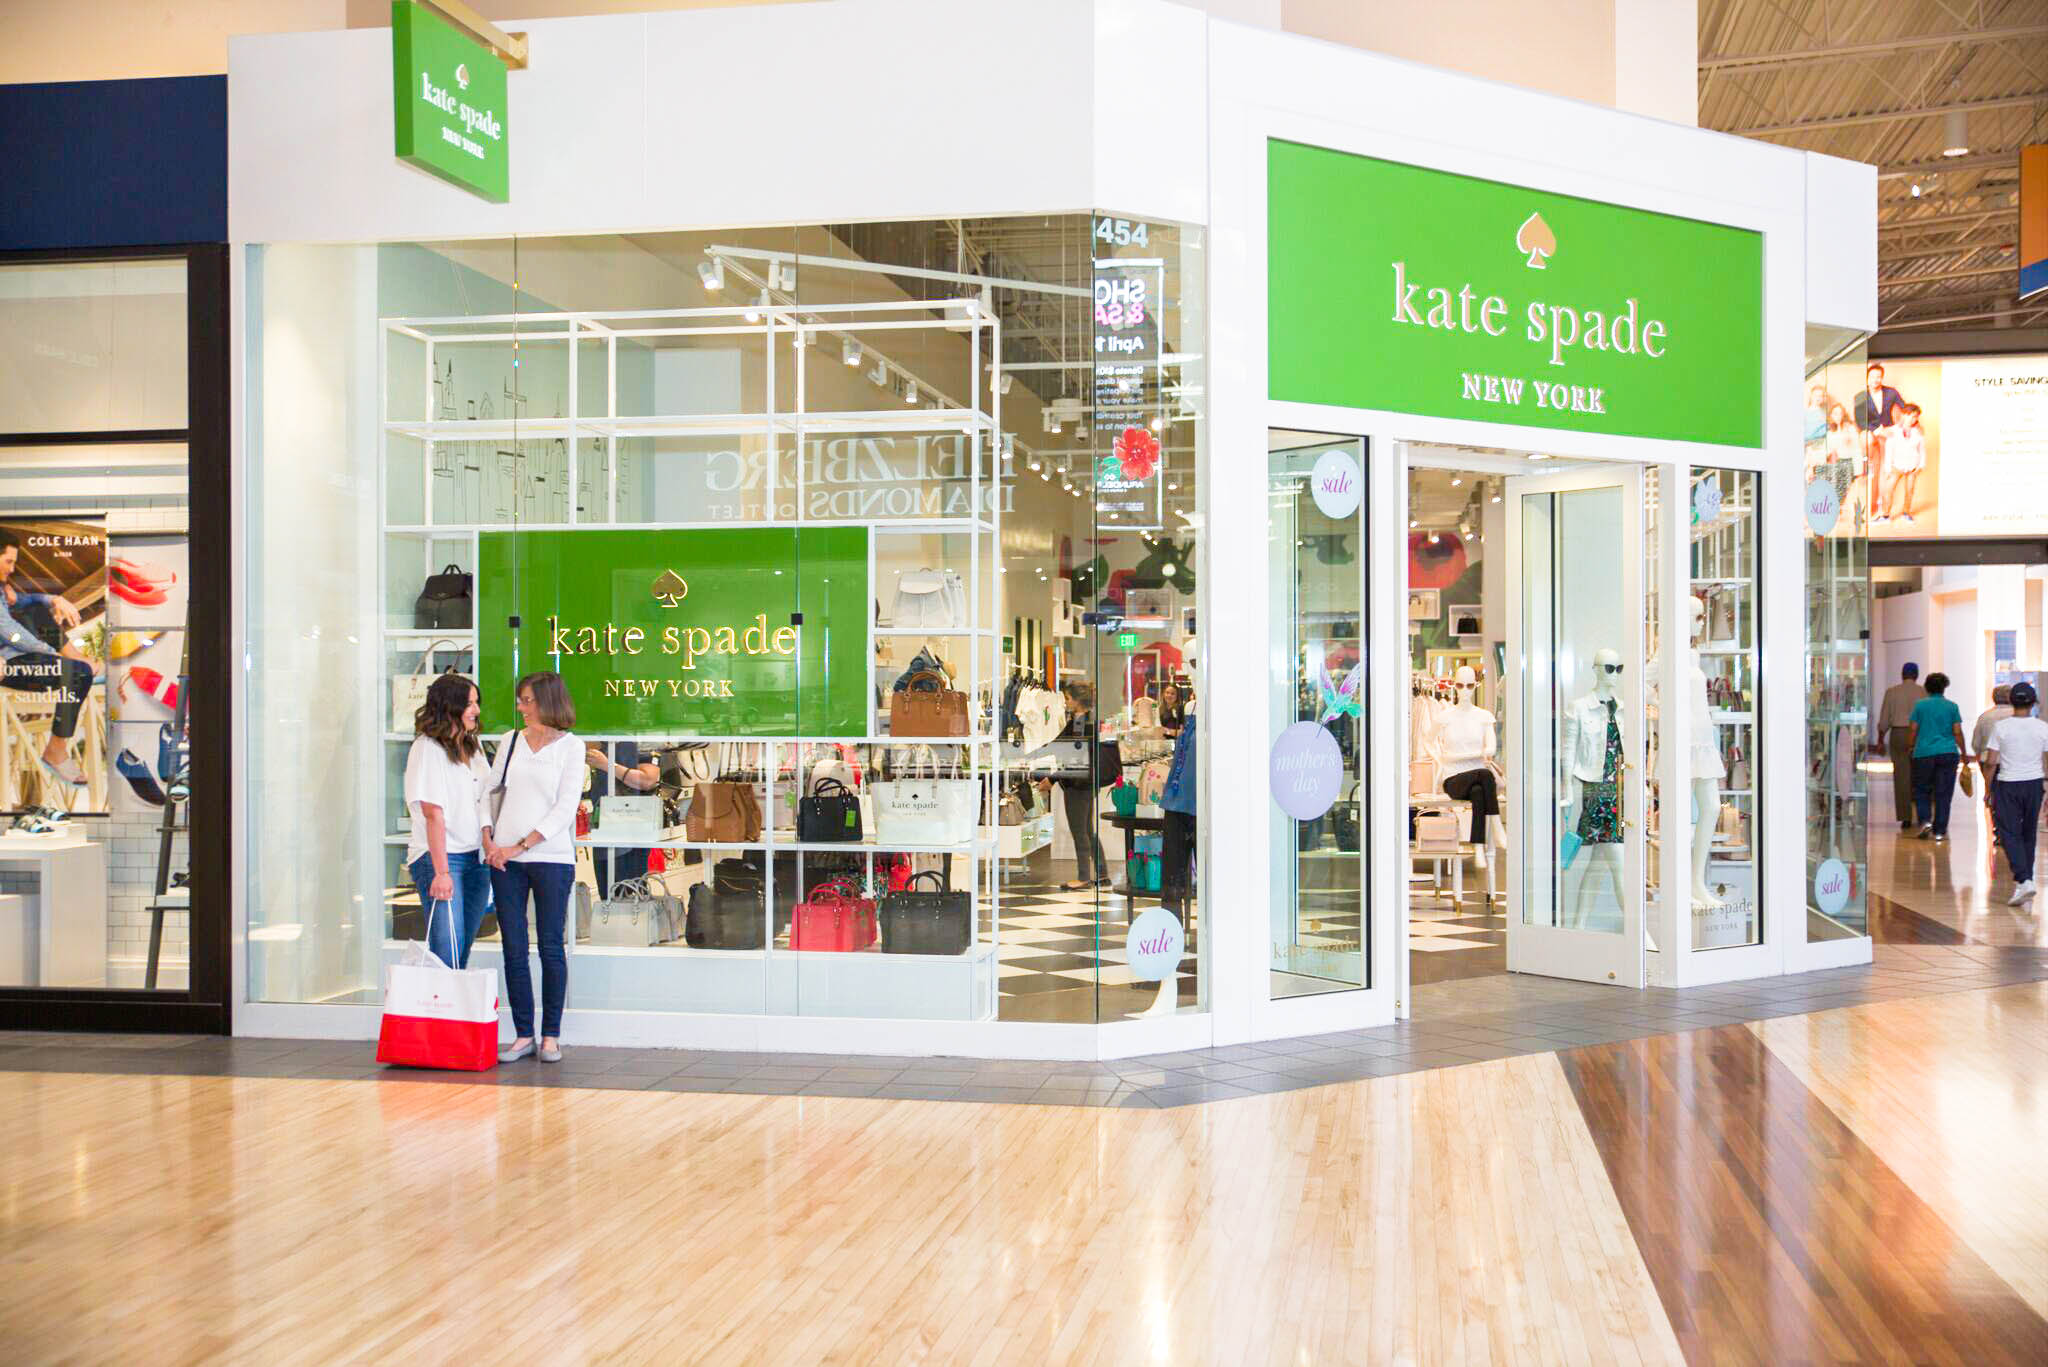 866daf8f06ab My favorite store to go to when I go to Arundel Mills is Kate Spade